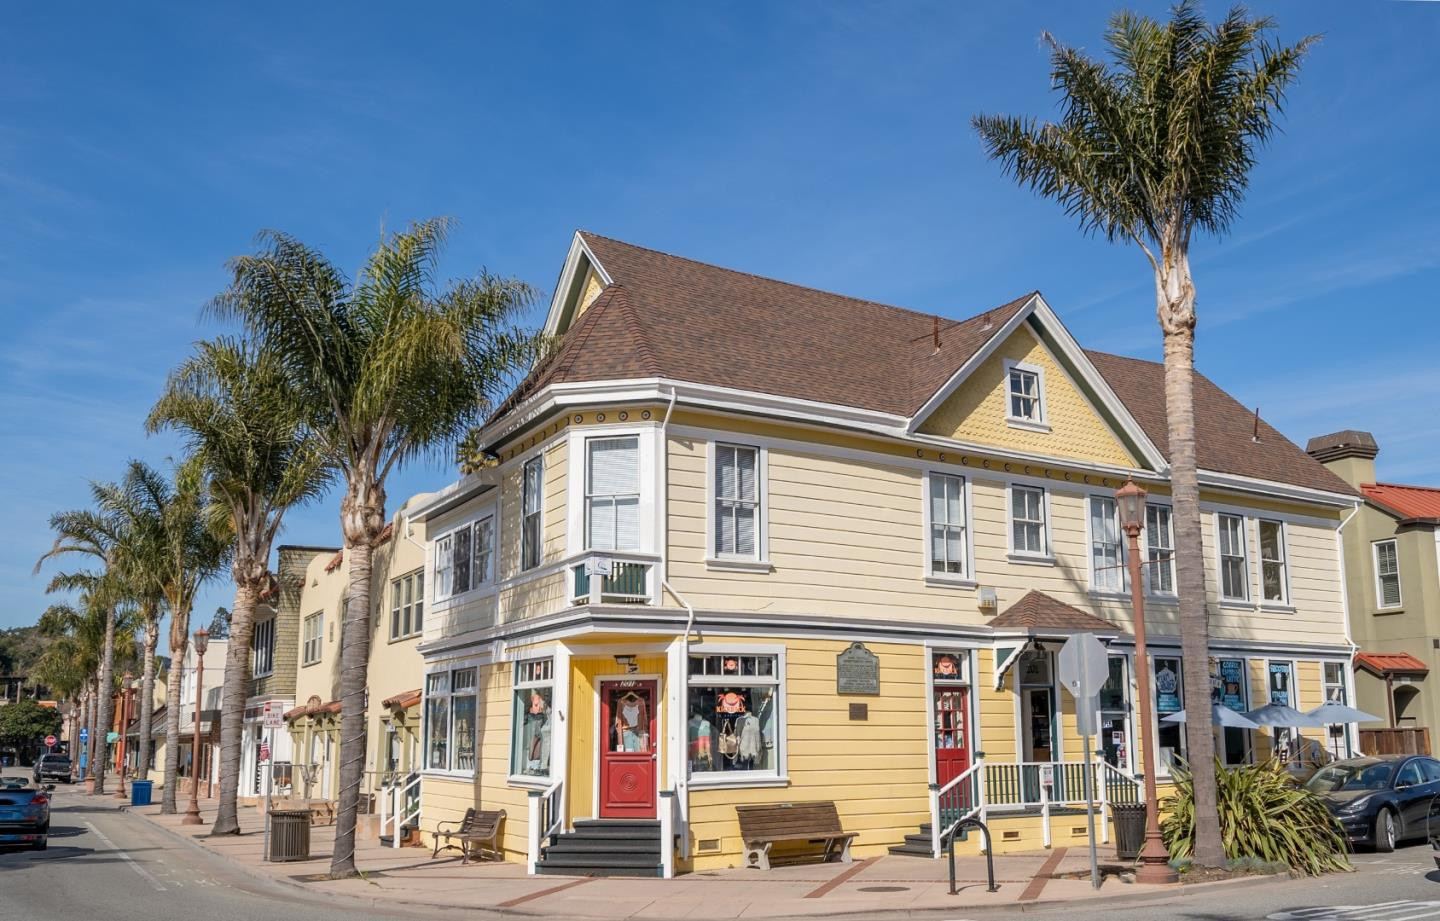 Opportunity to own a piece of Capitola history in a prime corner location in the heart of the quaint Capitola Village By the Sea. This trophy property once owned by F. A. Hihn served as the headquarters for Camp Capitola, California's first seaside resort community, until 1930. Restored in the 1970's and updated again in 2018, it has the prestigious designation as being marked a California Historic Landmark. The beautiful architecture & freshly painted exterior stands out and brings attention to 3 commercial spaces, currently 2 retail stores & a deli with 2 half baths. On the 2nd floor set above the street are 2 one-bedroom apartments recently renovated with new kitchens, baths, & flooring; one offers great ocean views. Set in the vacation rental zone offering flexibility for long or short term rentals. On the top level is a large attic space with high ceilings & half bath. Arguably one of the best locations in Santa Cruz County only steps to the beach. Visit HistoricCapitola.com.